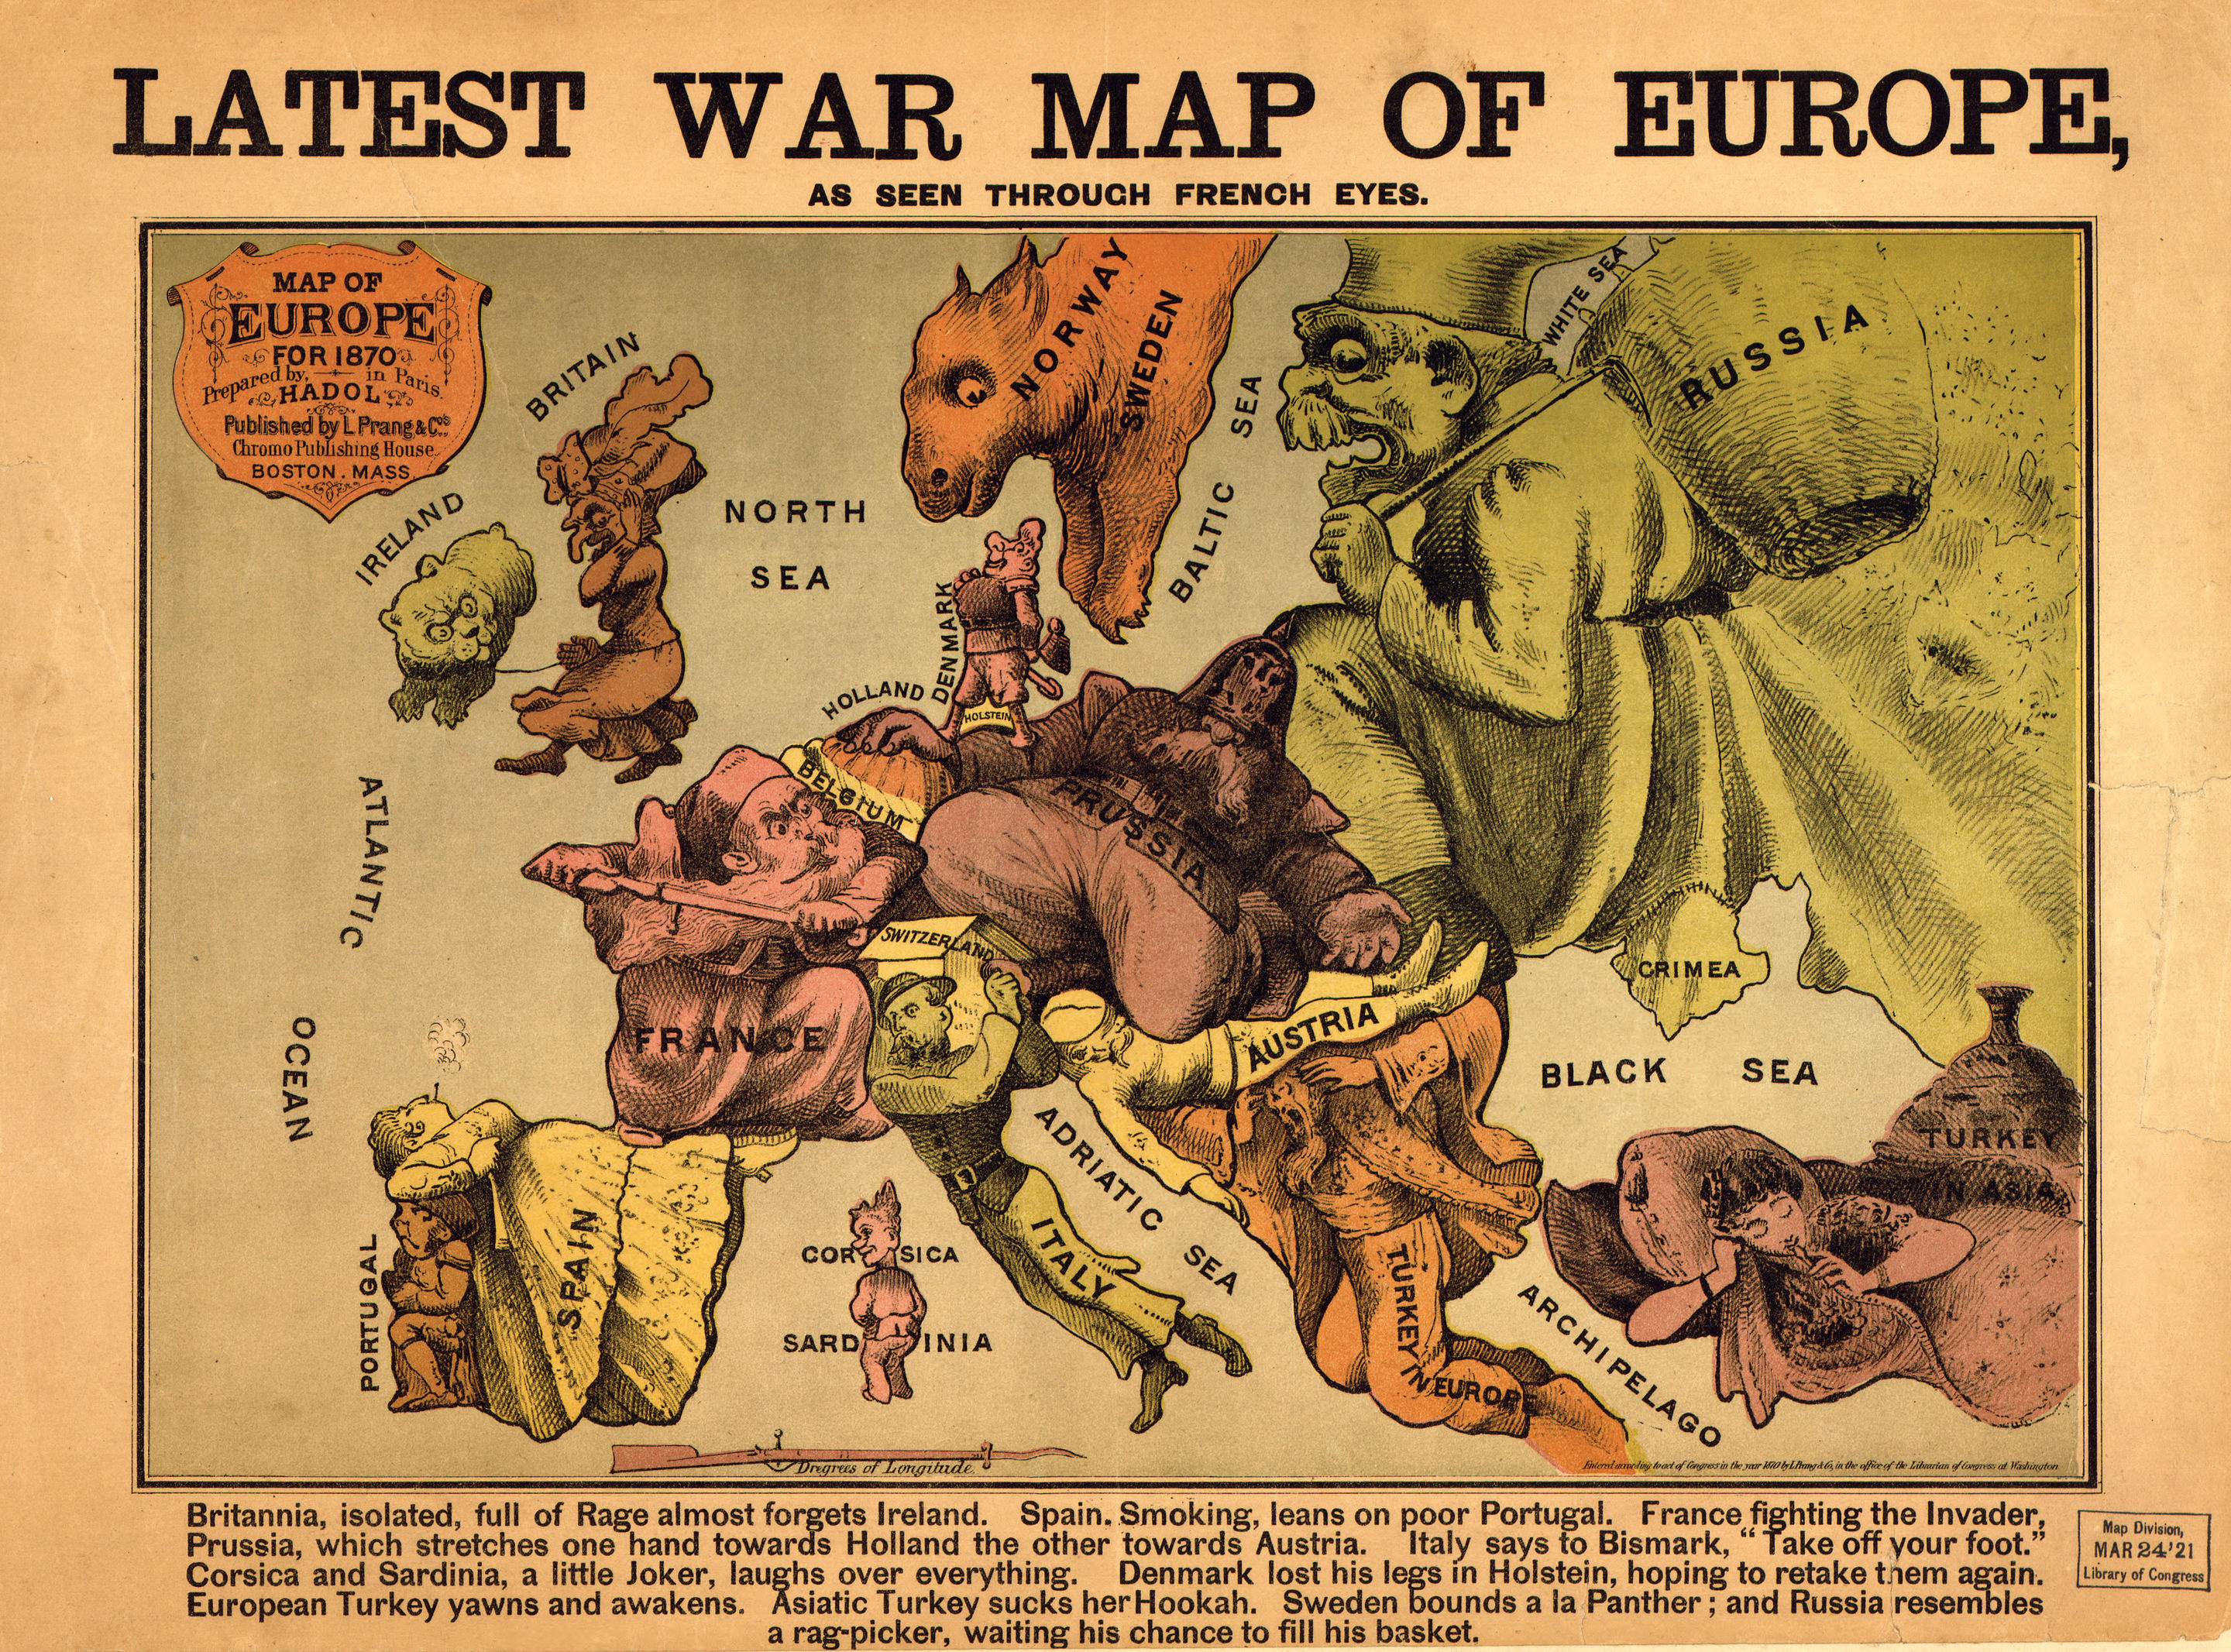 World war i maps the latest war map of europe 1870 gumiabroncs Image collections